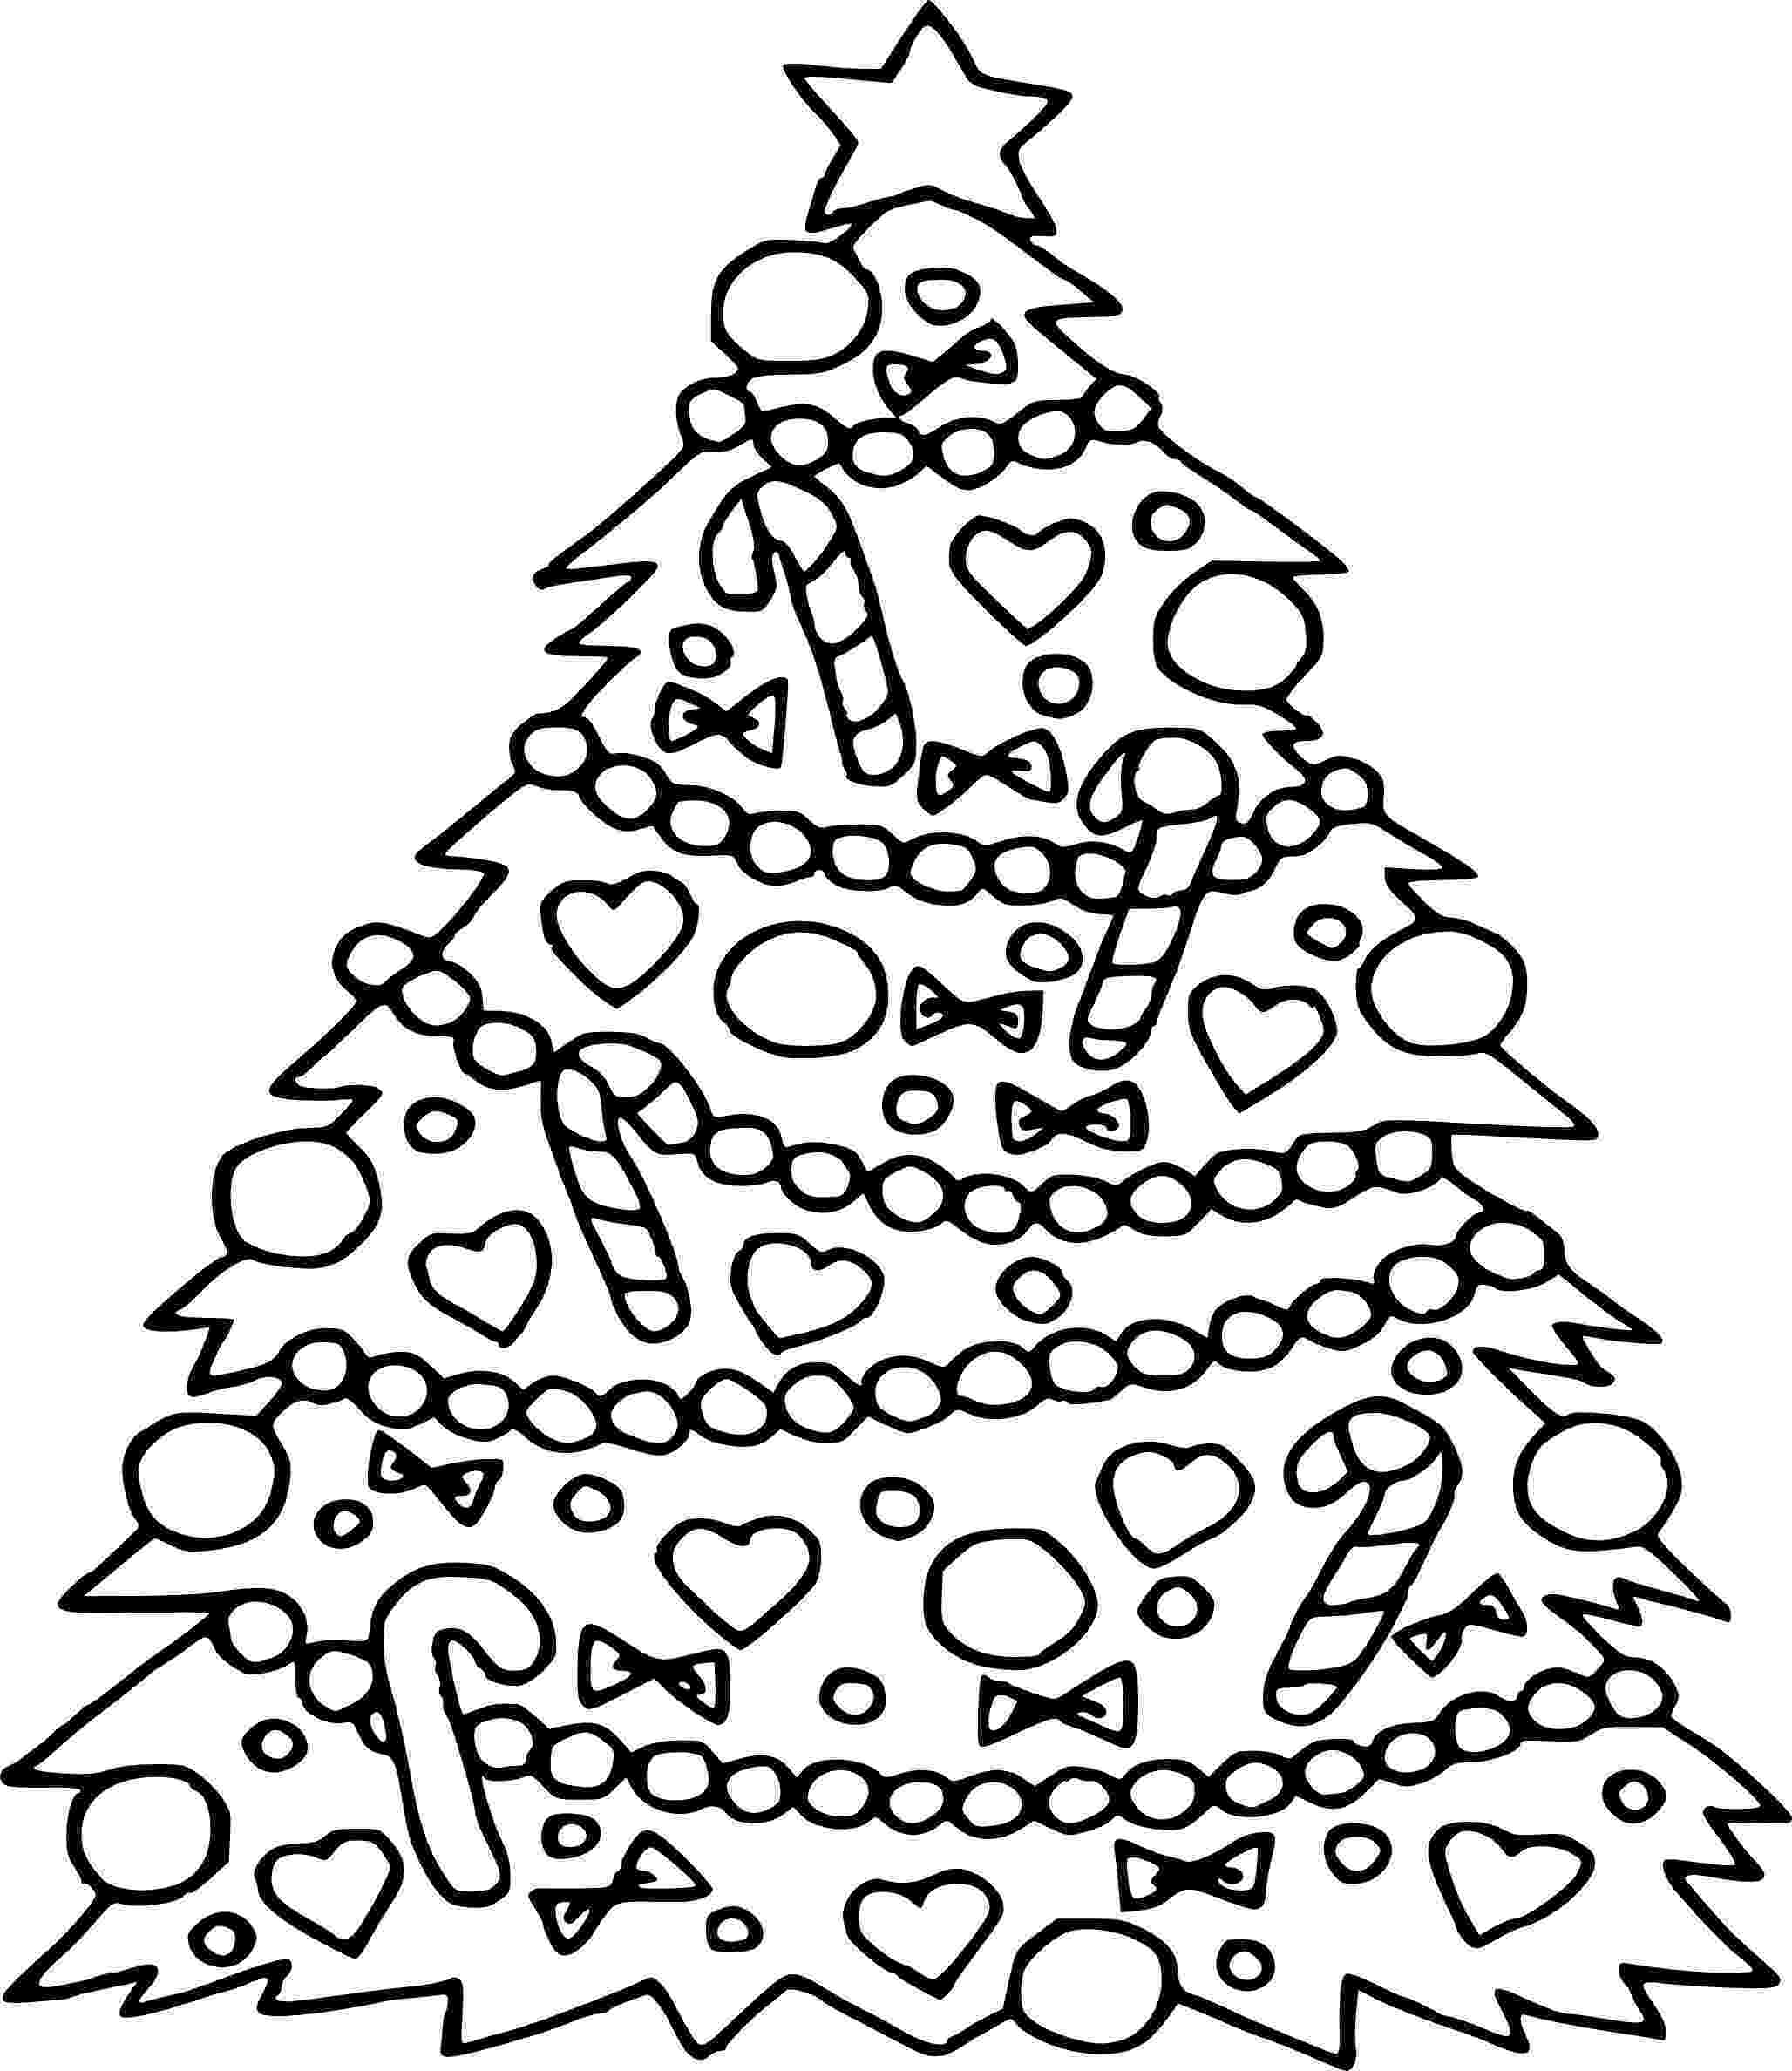 coloring christmas tree christmas tree drawing for kids at getdrawings free download christmas tree coloring